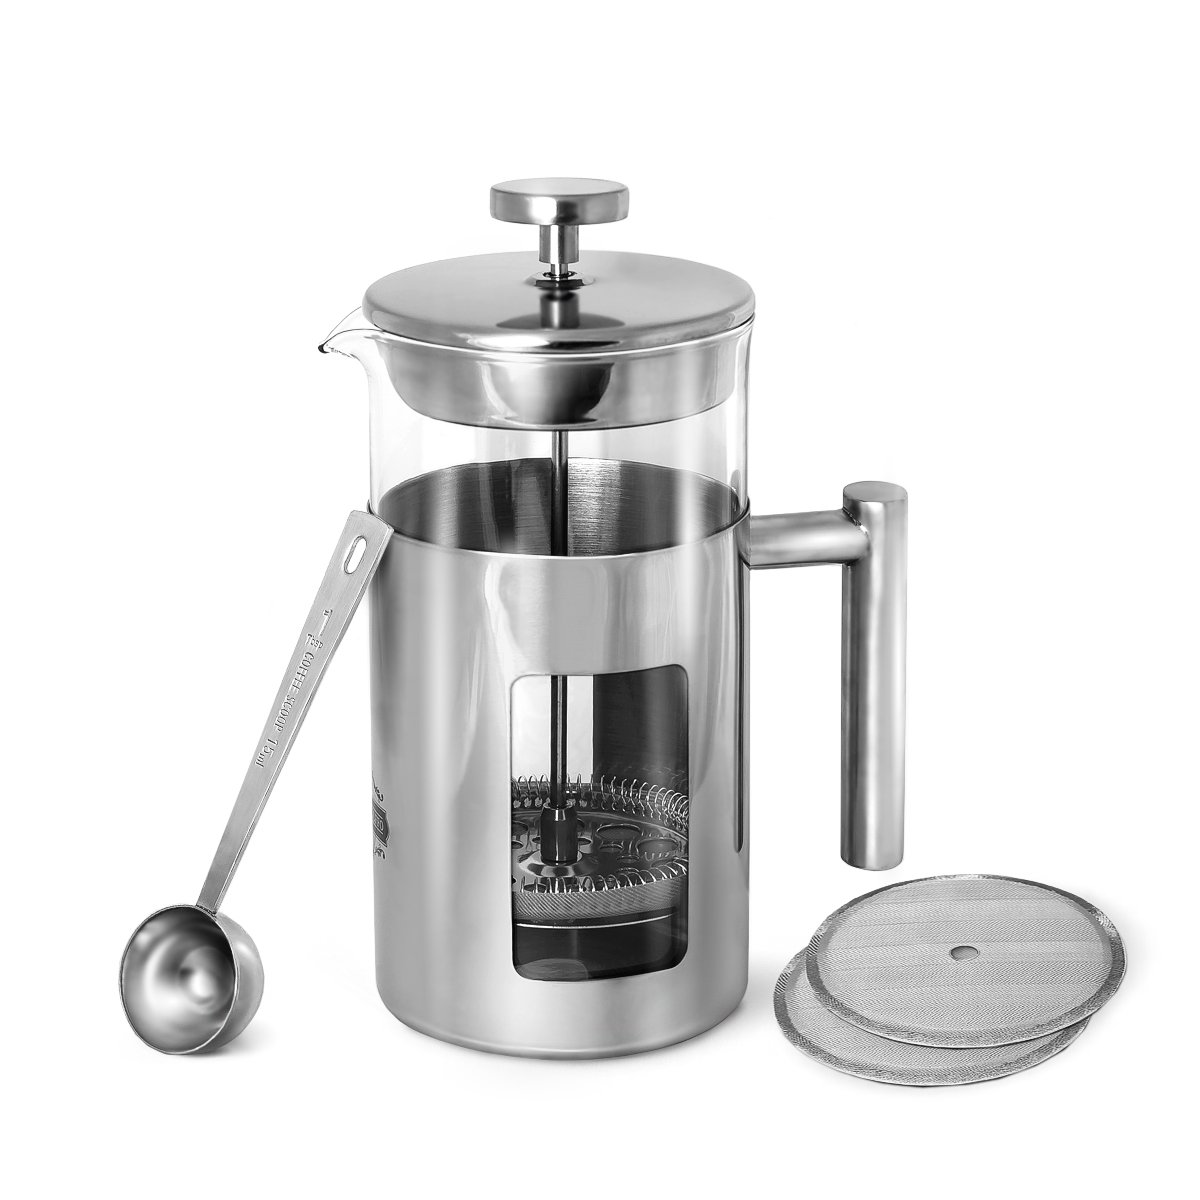 Rodolffo Quality French Press Coffee Maker 34 Ounce with Stainless Steel 18/8 incudes Borosilicate Glass Cup & Stainless Steel Strainer. Creates Exceptional Taste & Purity. Enjoy Perfect Coffee by Rodolffo